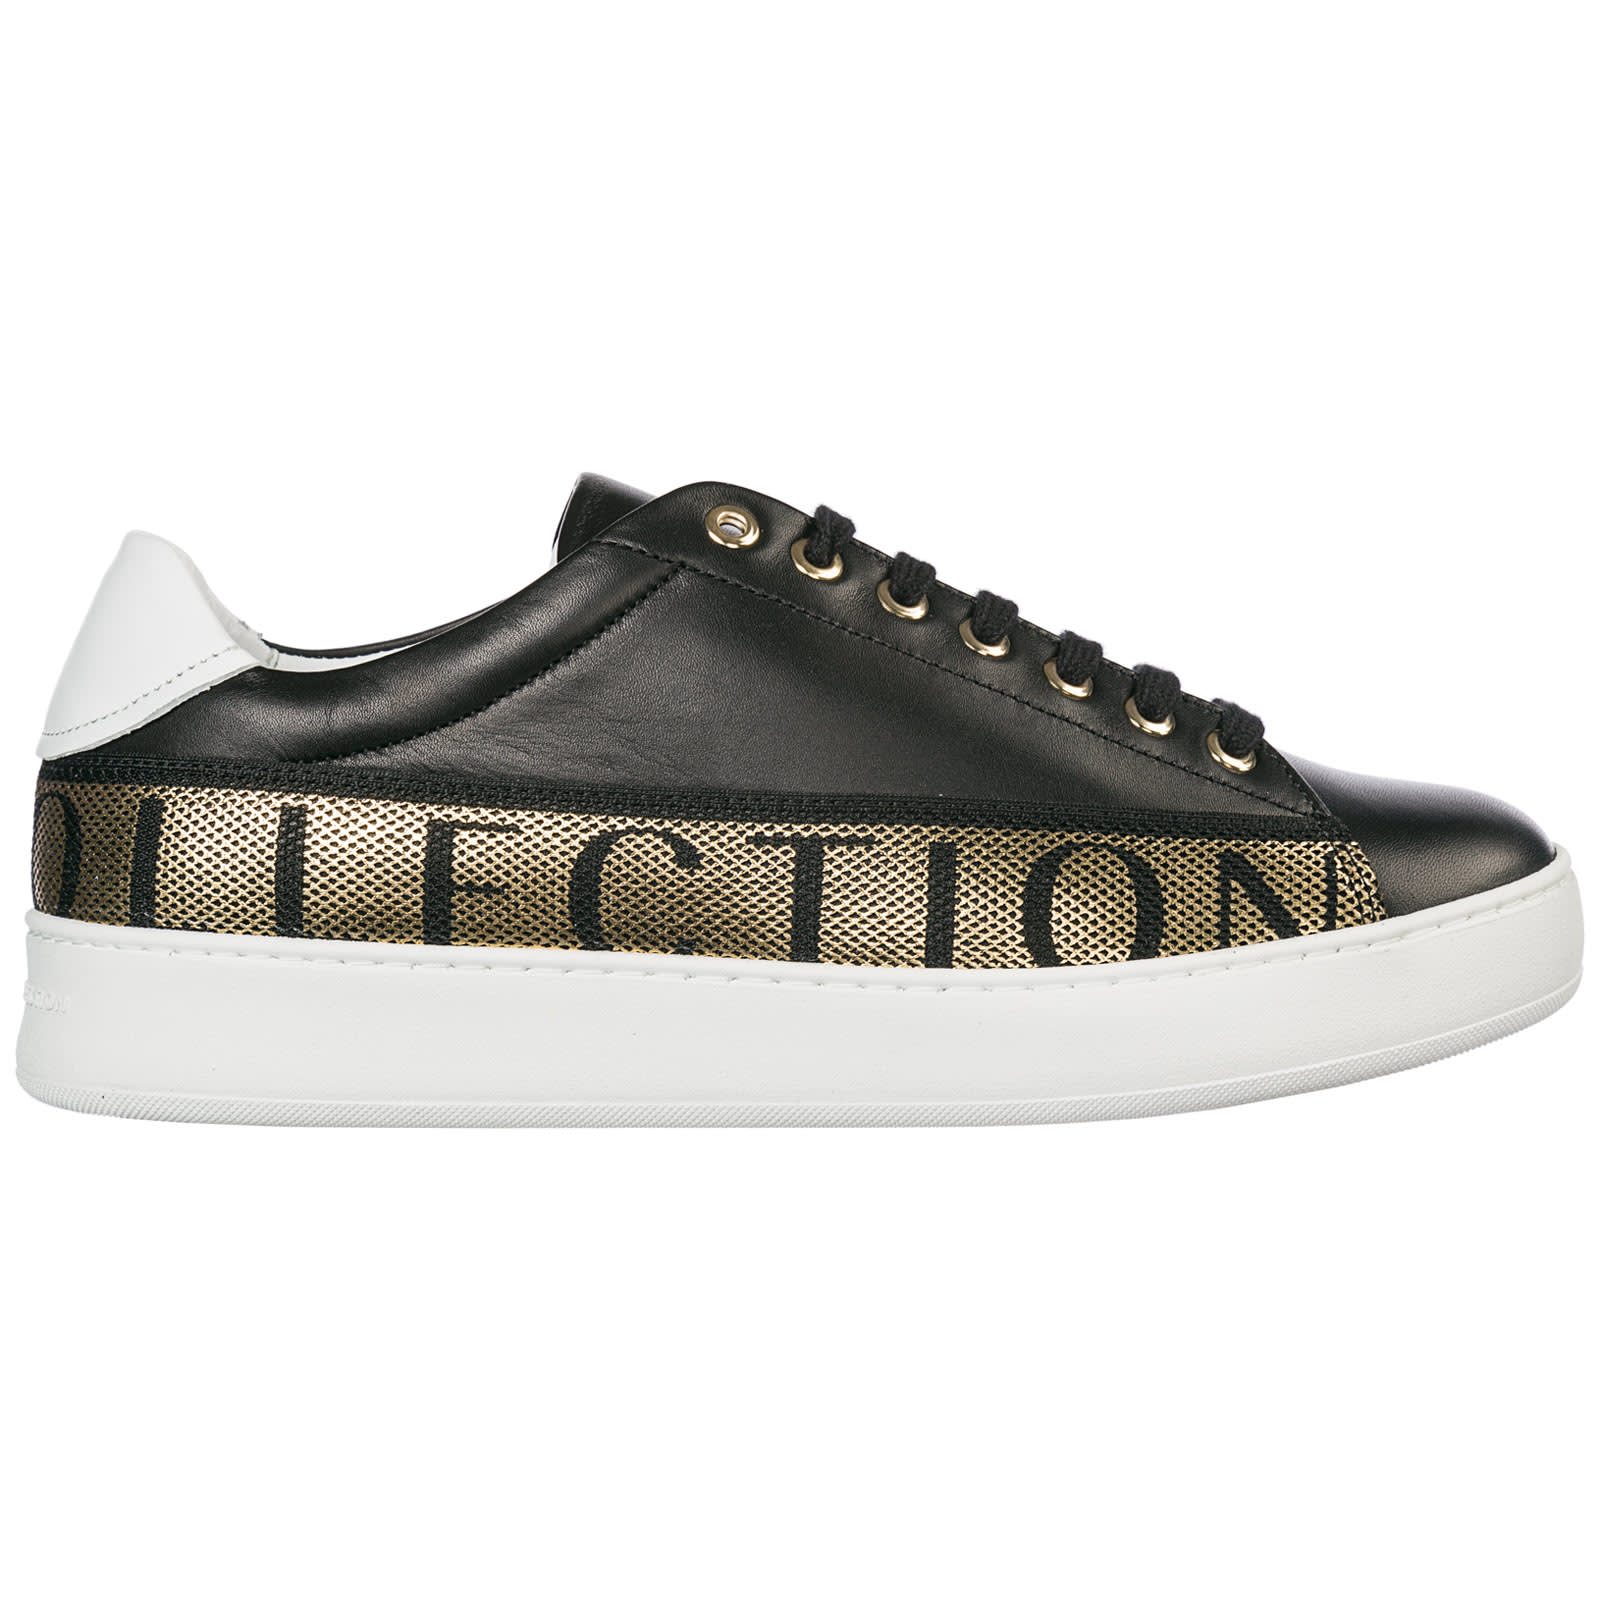 Versace Collection Shoes Leather Trainers Sneakers